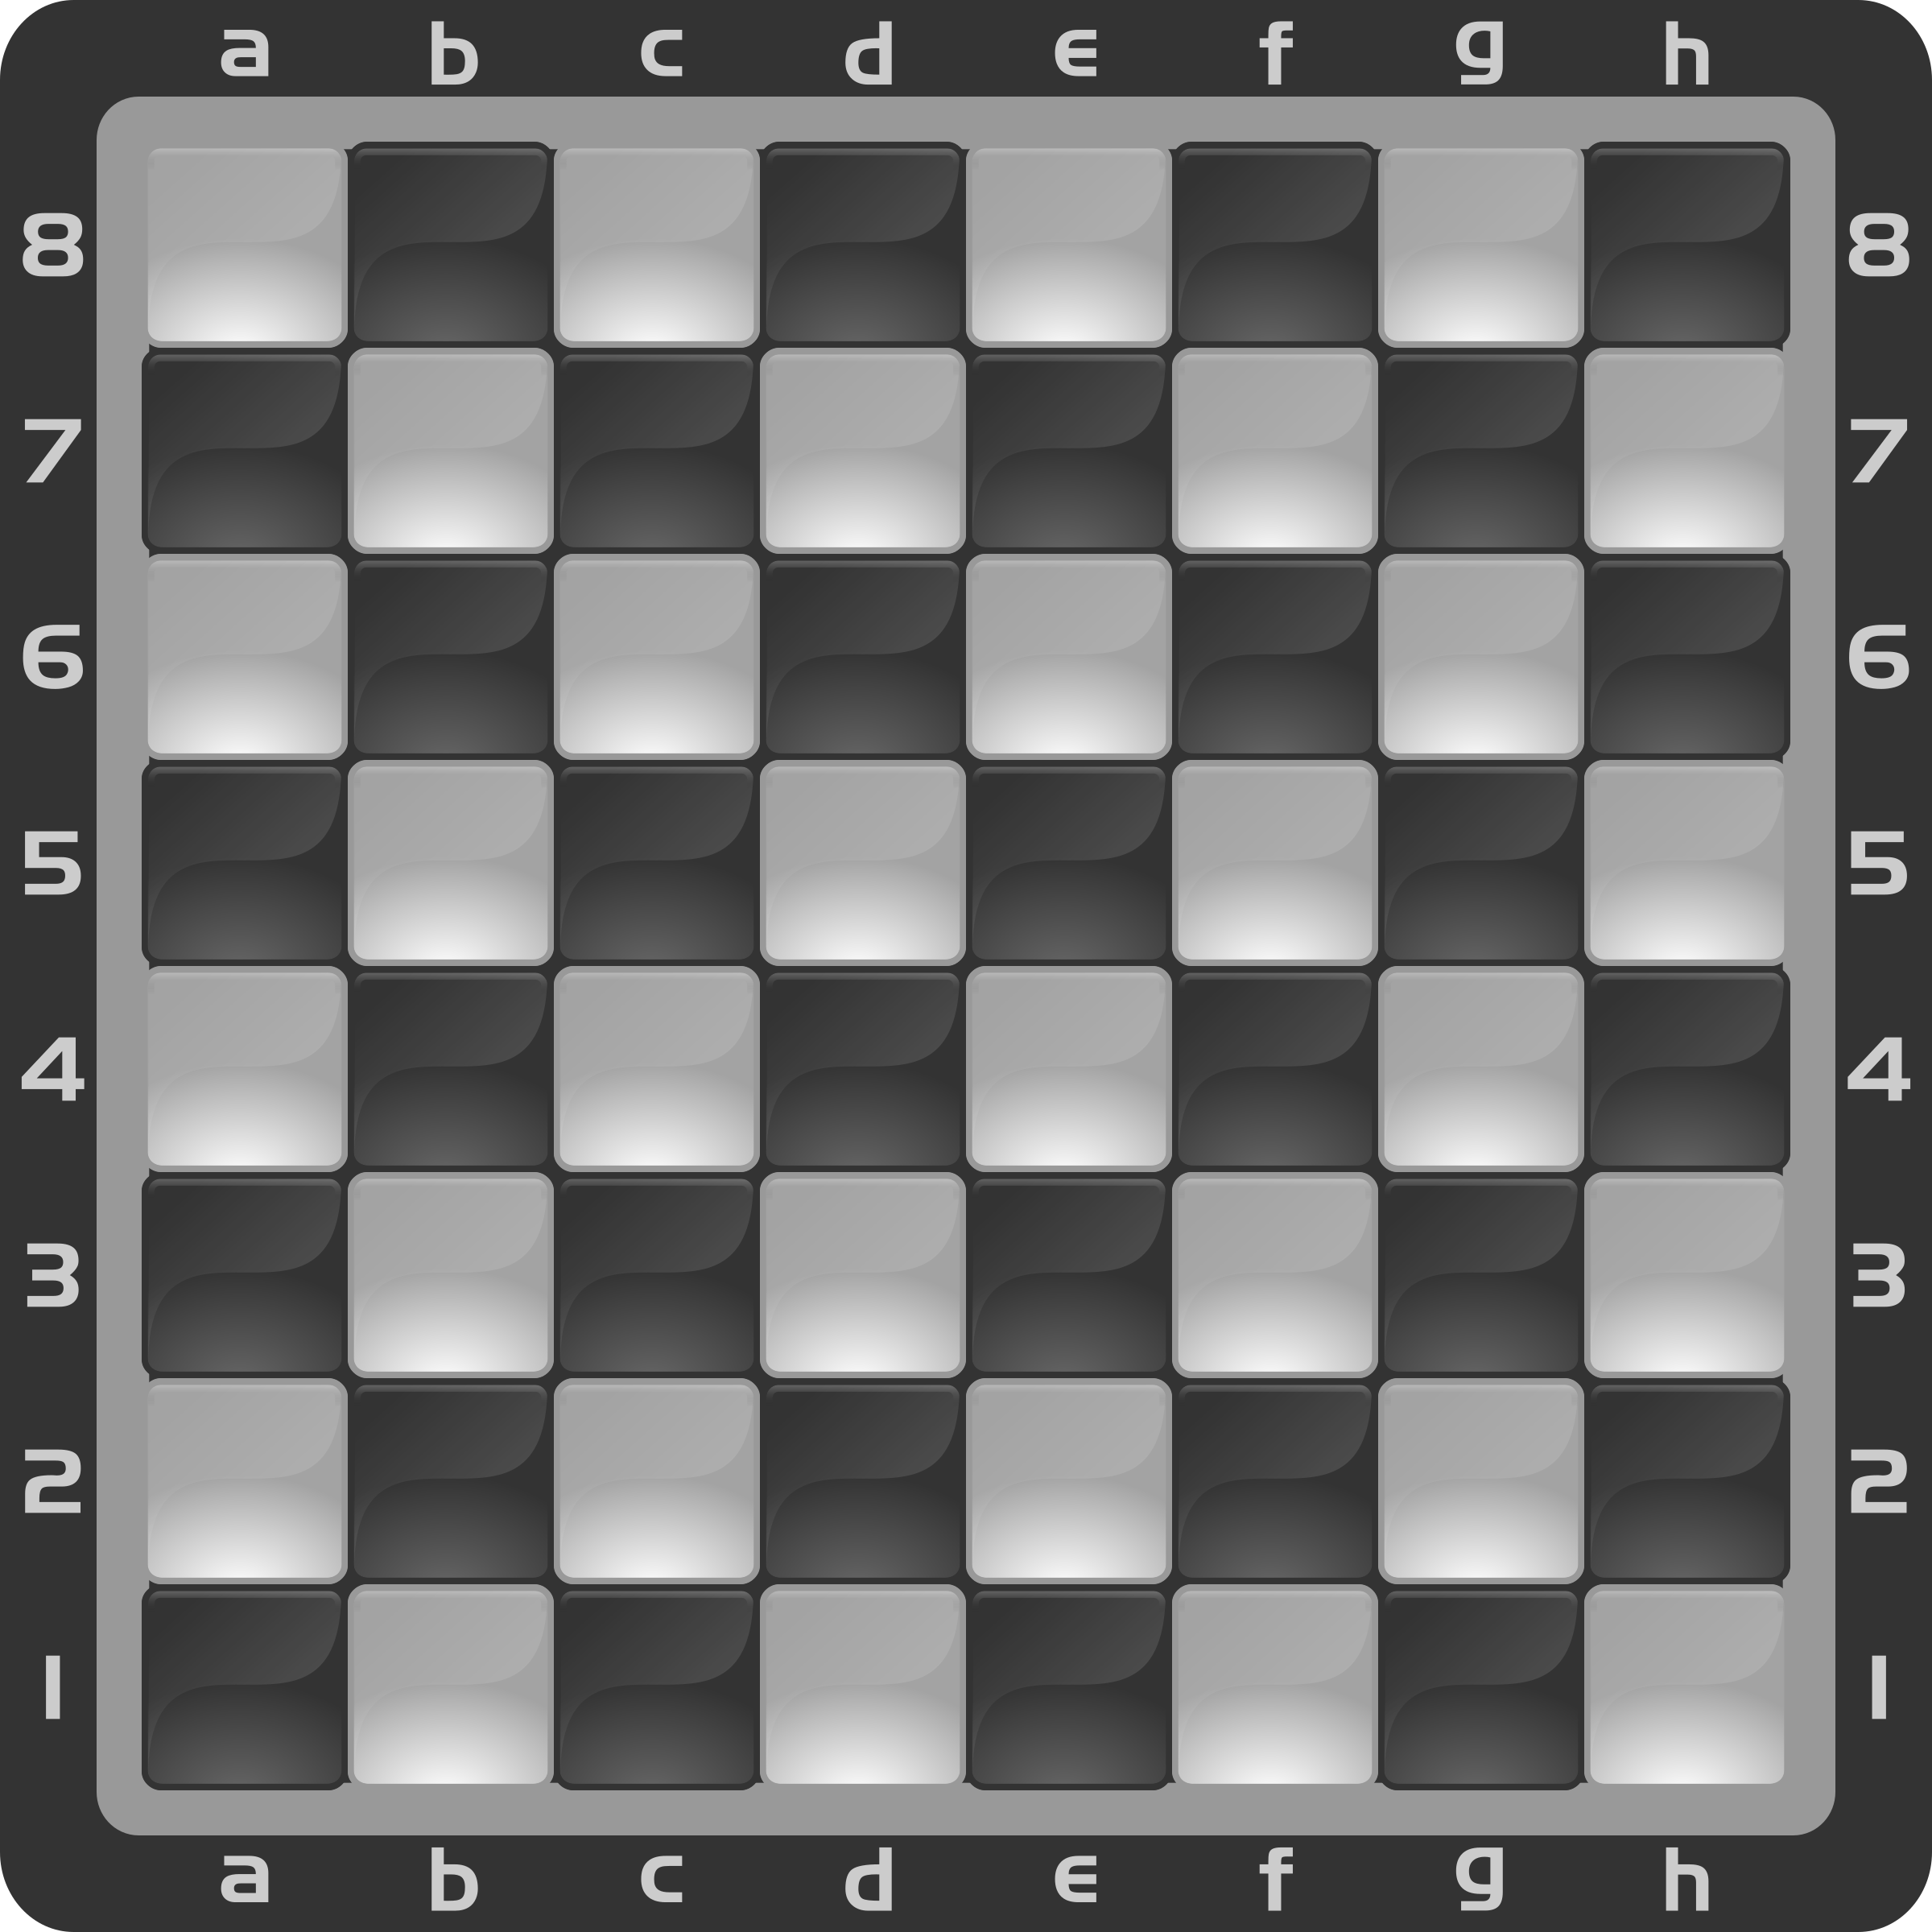 Chessboard Glossy Squares - Black by DG-RA